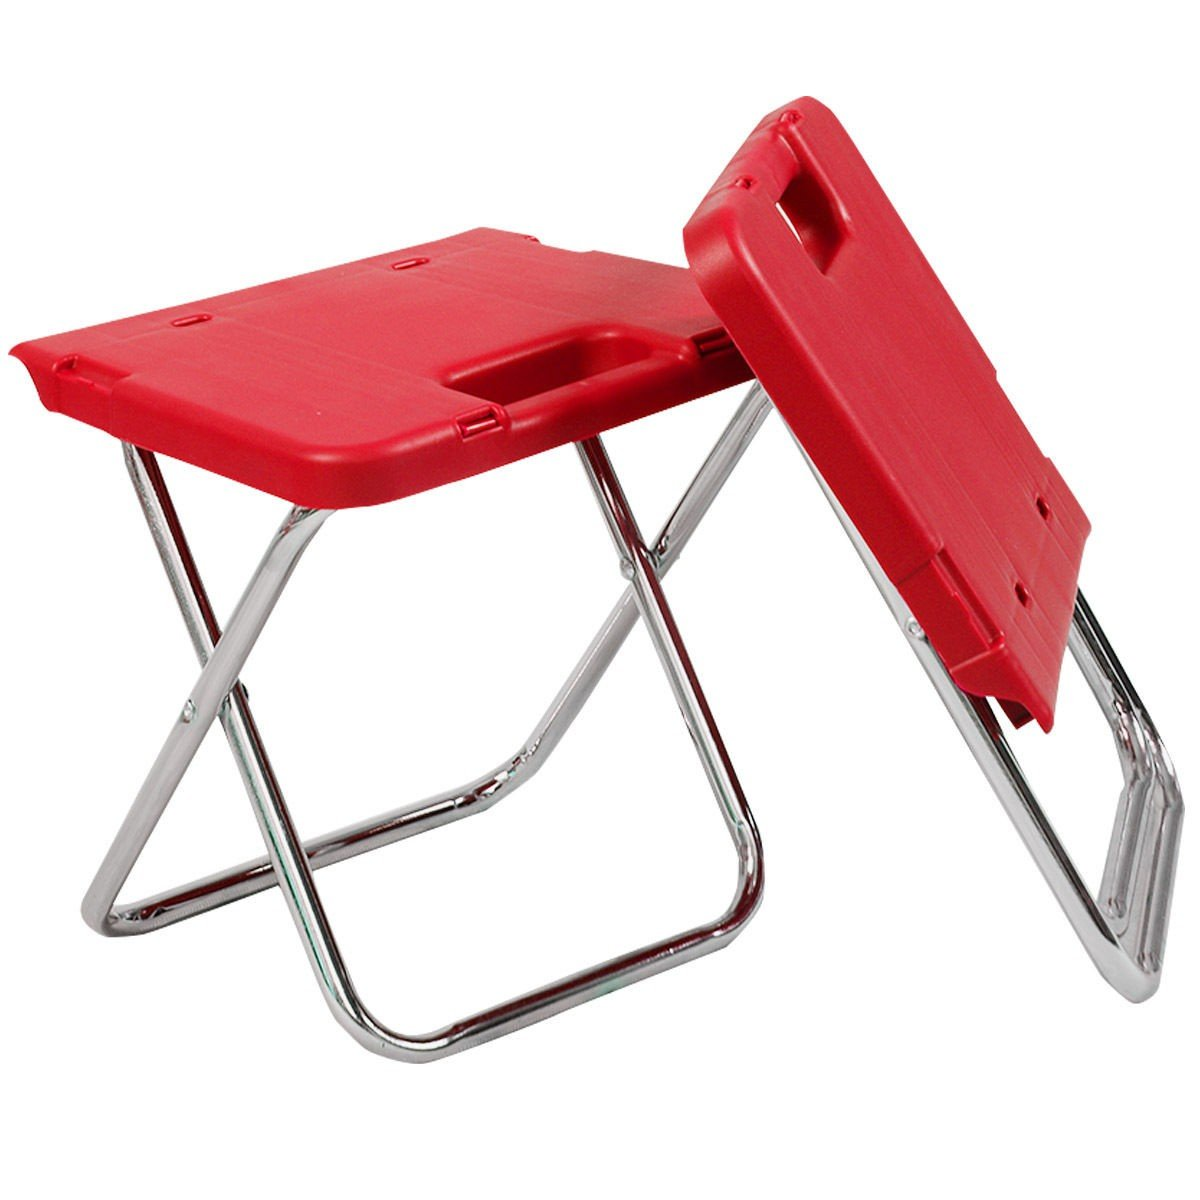 CHOOSEandBUY Multi Functional Rolling Picnic Cooler w/Table & 2 Chairs - RED by CHOOSEandBUY (Image #9)